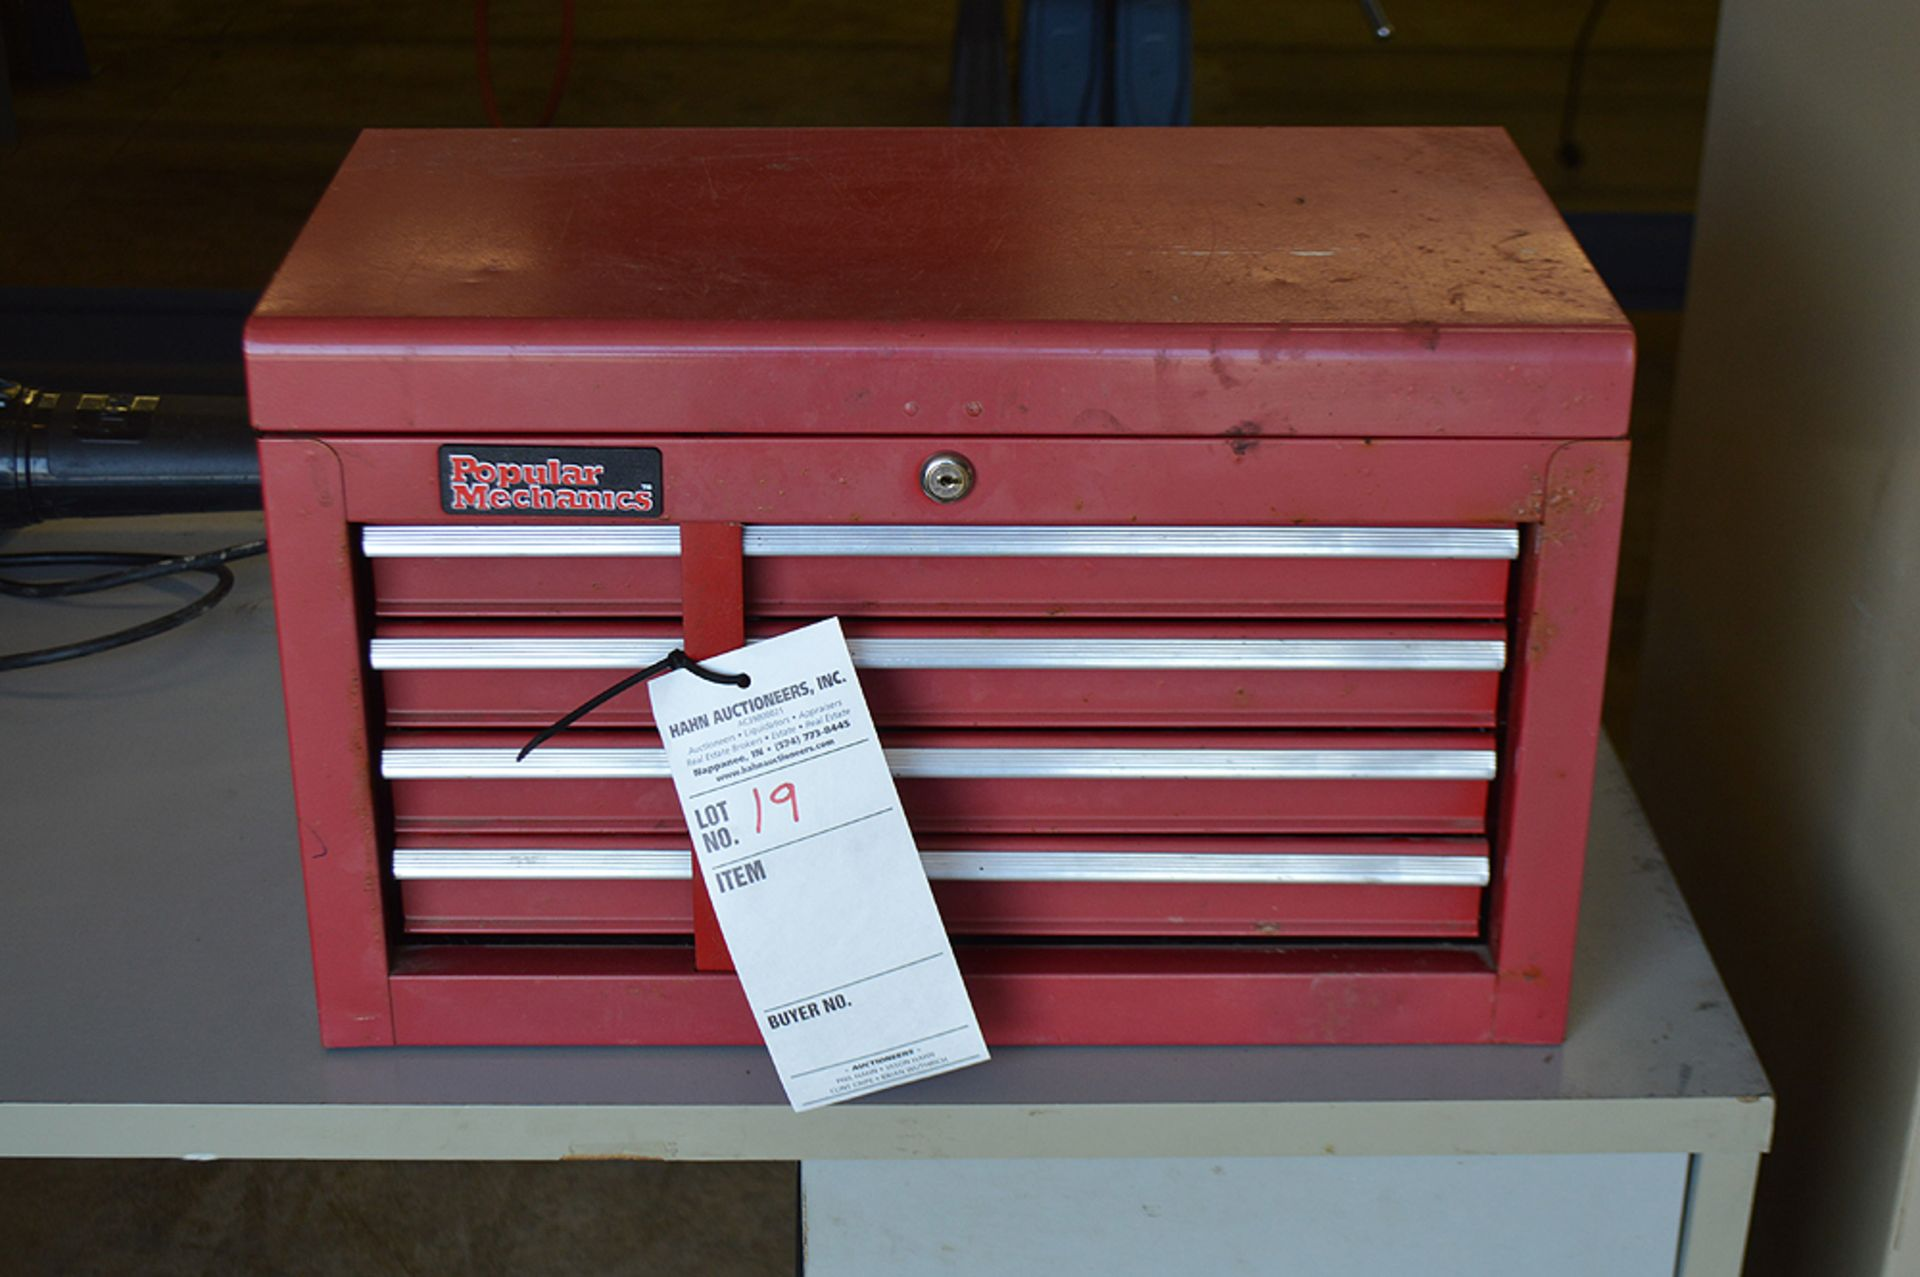 Lot 19 - POPULAR MECHANICS TOOL BOX